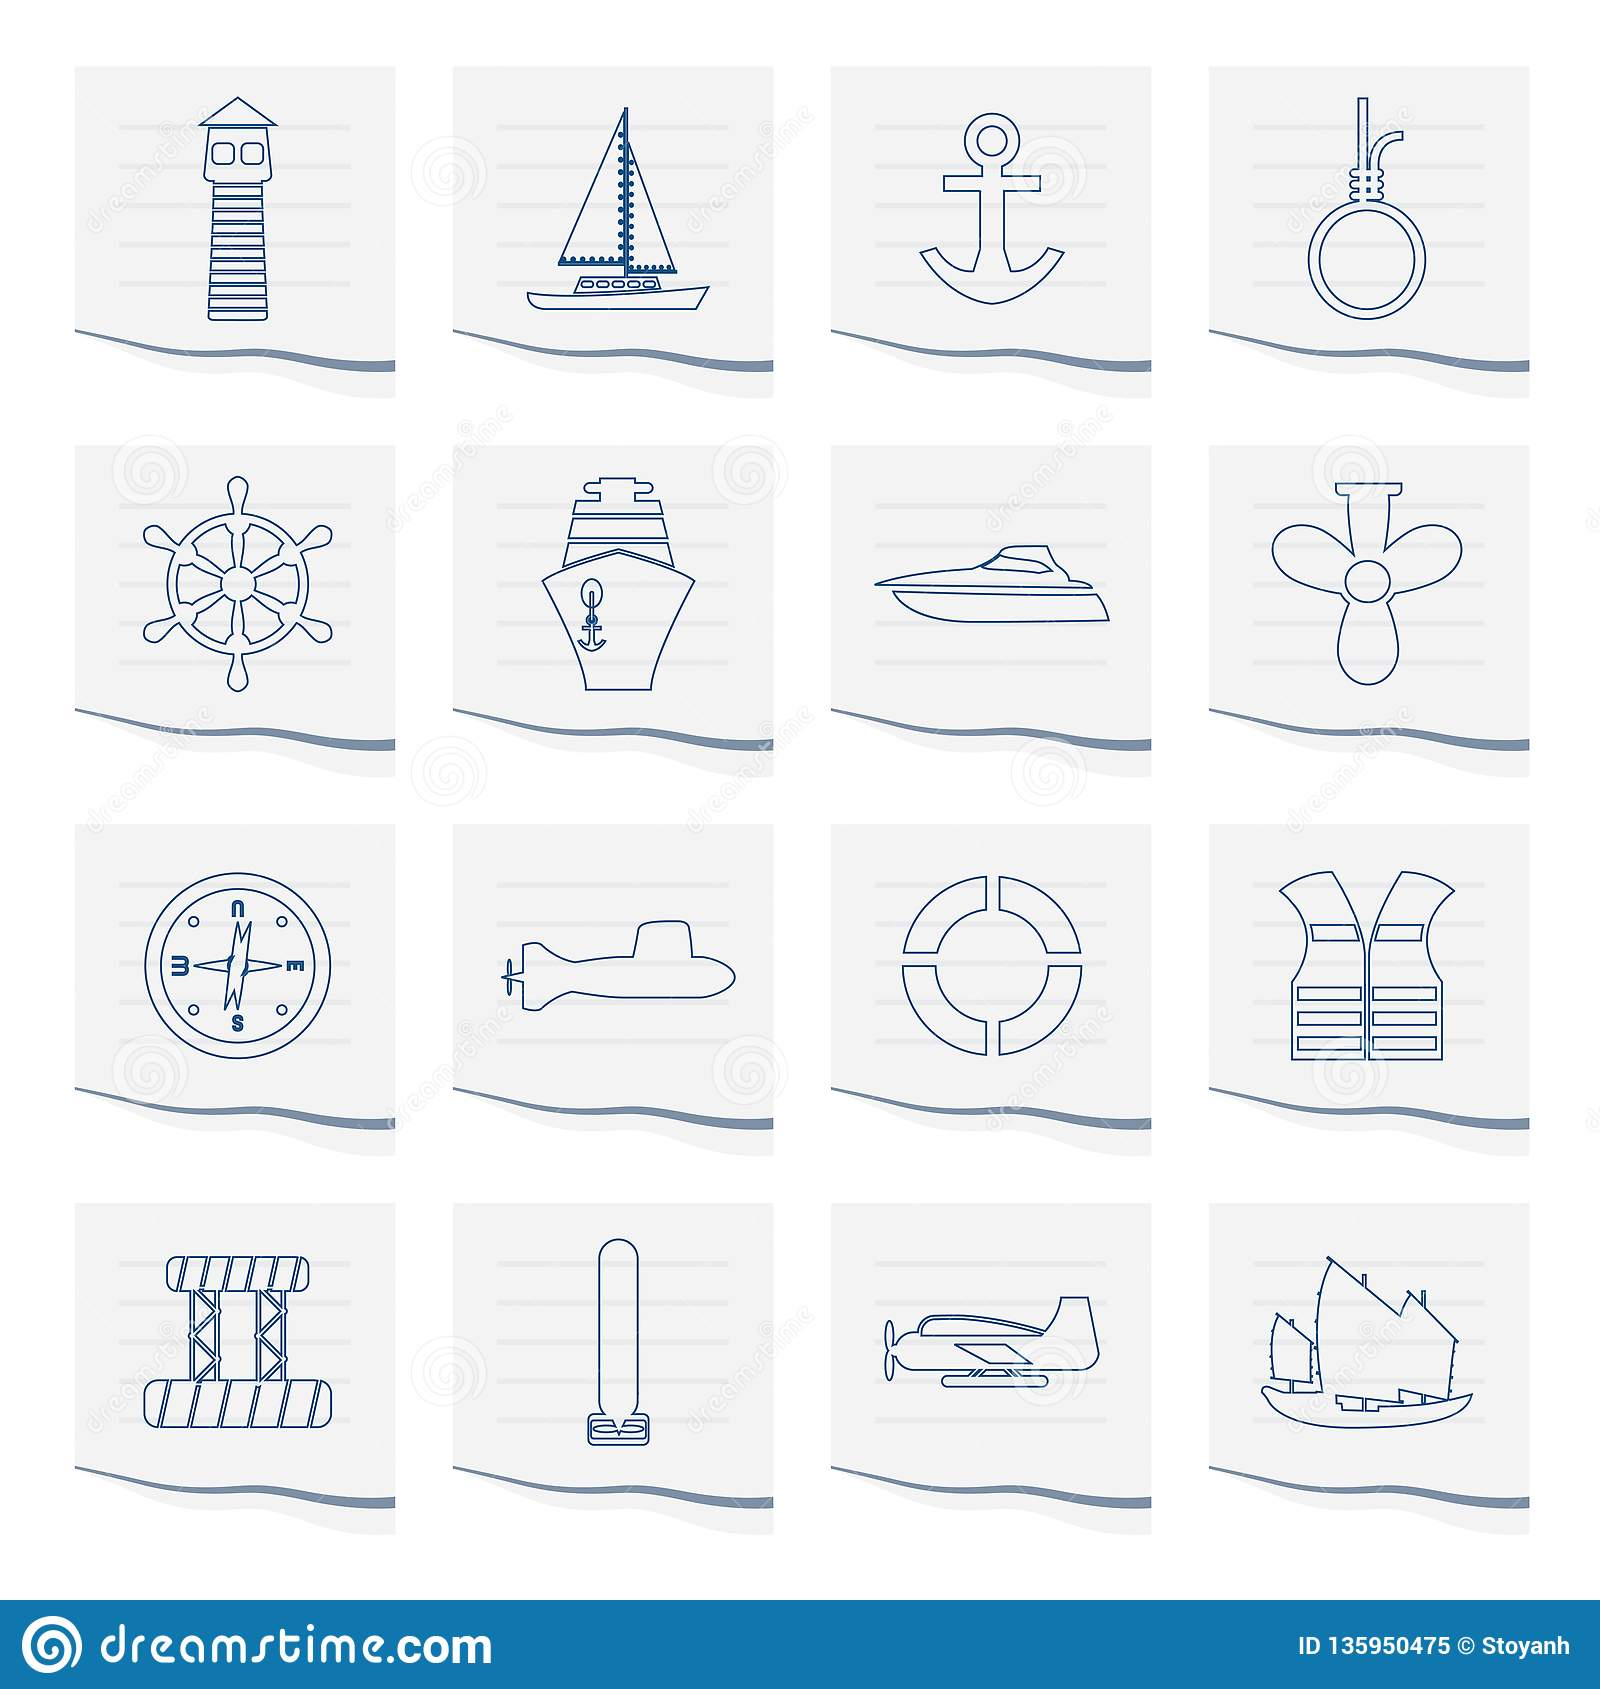 Marine, Sailing and Sea Icons on a piece of paper